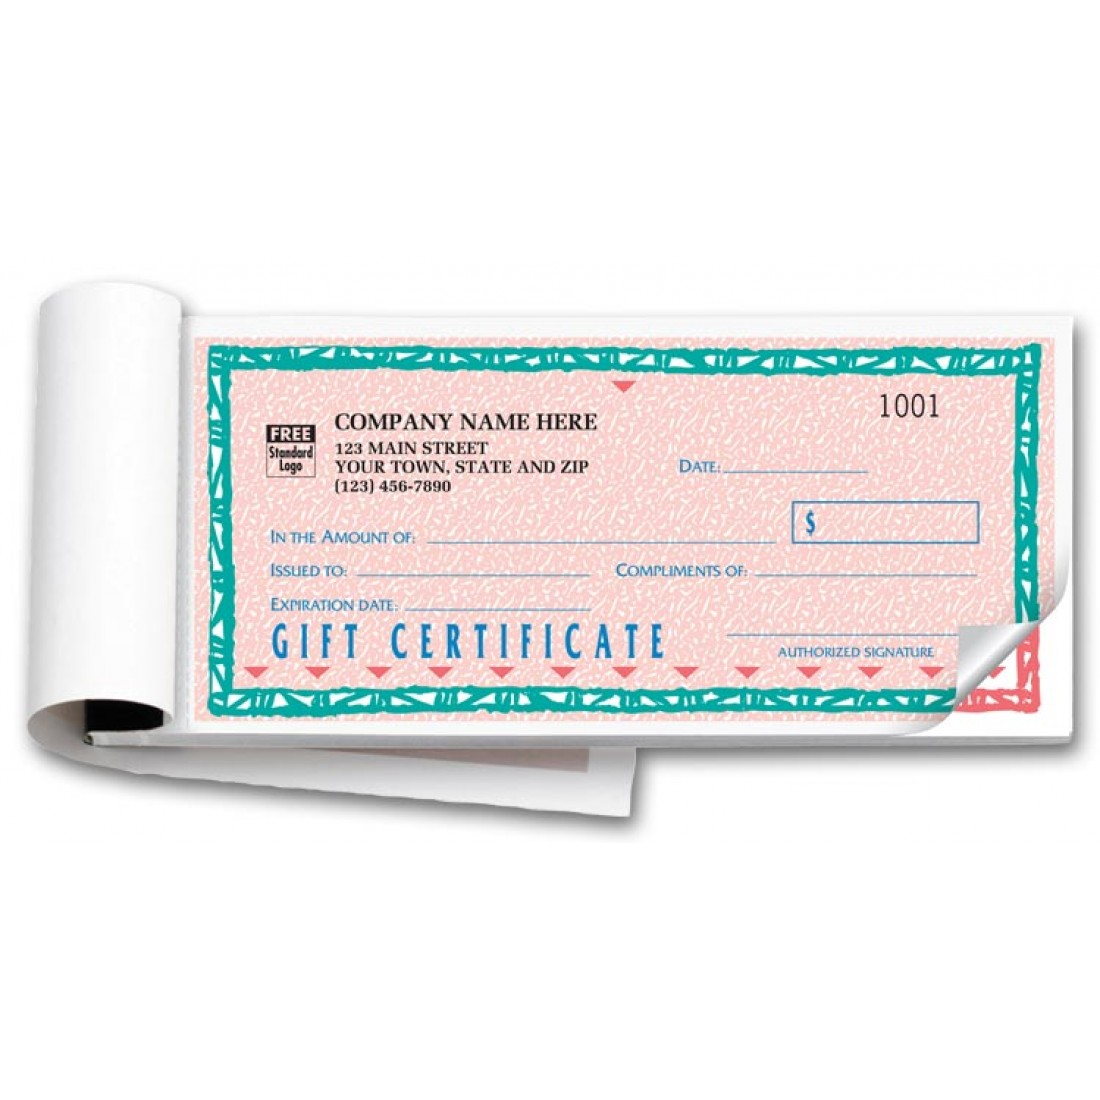 St. Croix Custom Gift Certificate Forms